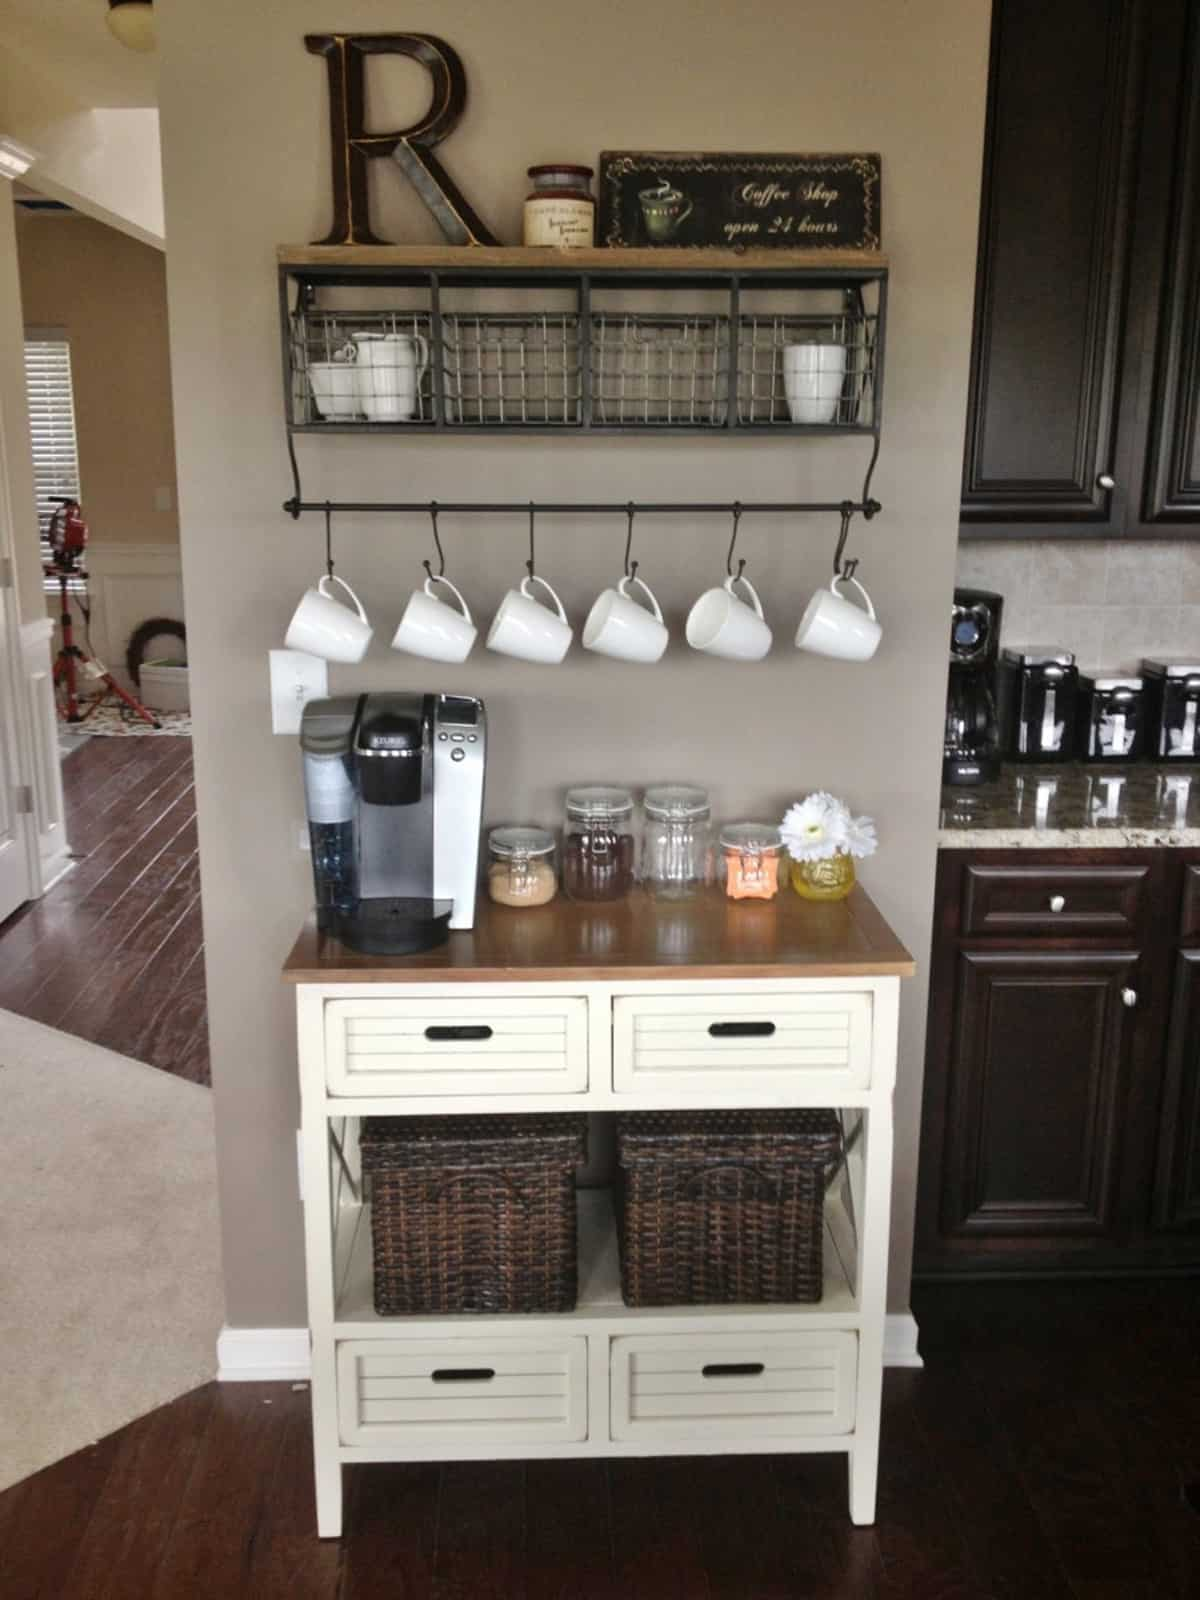 20 Coffee Station Ideas to Make Caffeine Addicts Happy